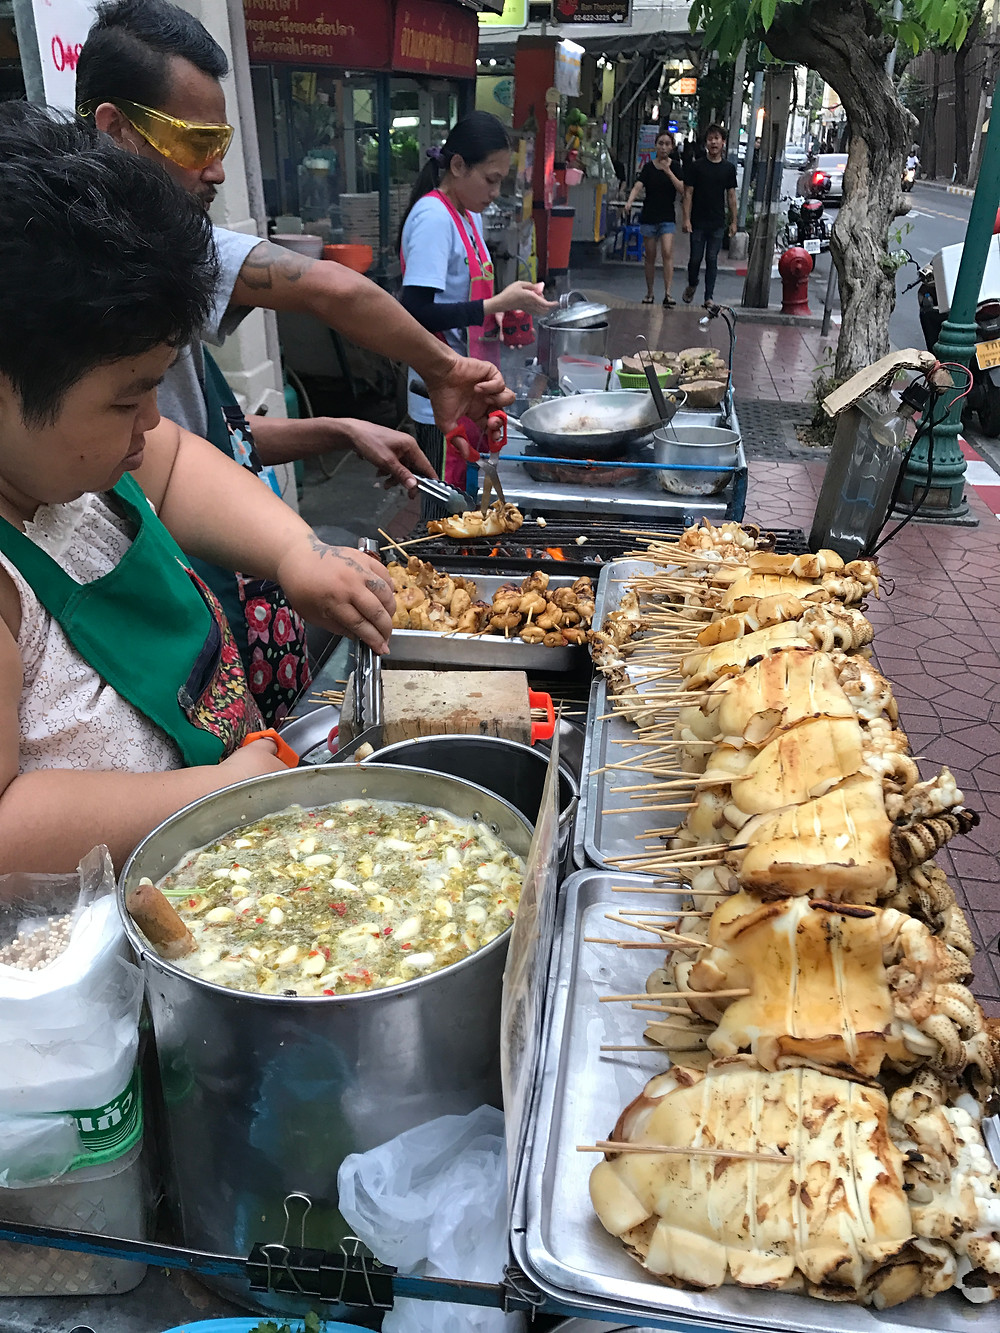 Two professional Street Food Vendors in Bangkok, grilling Octopus and Squids in a personal, unique way.